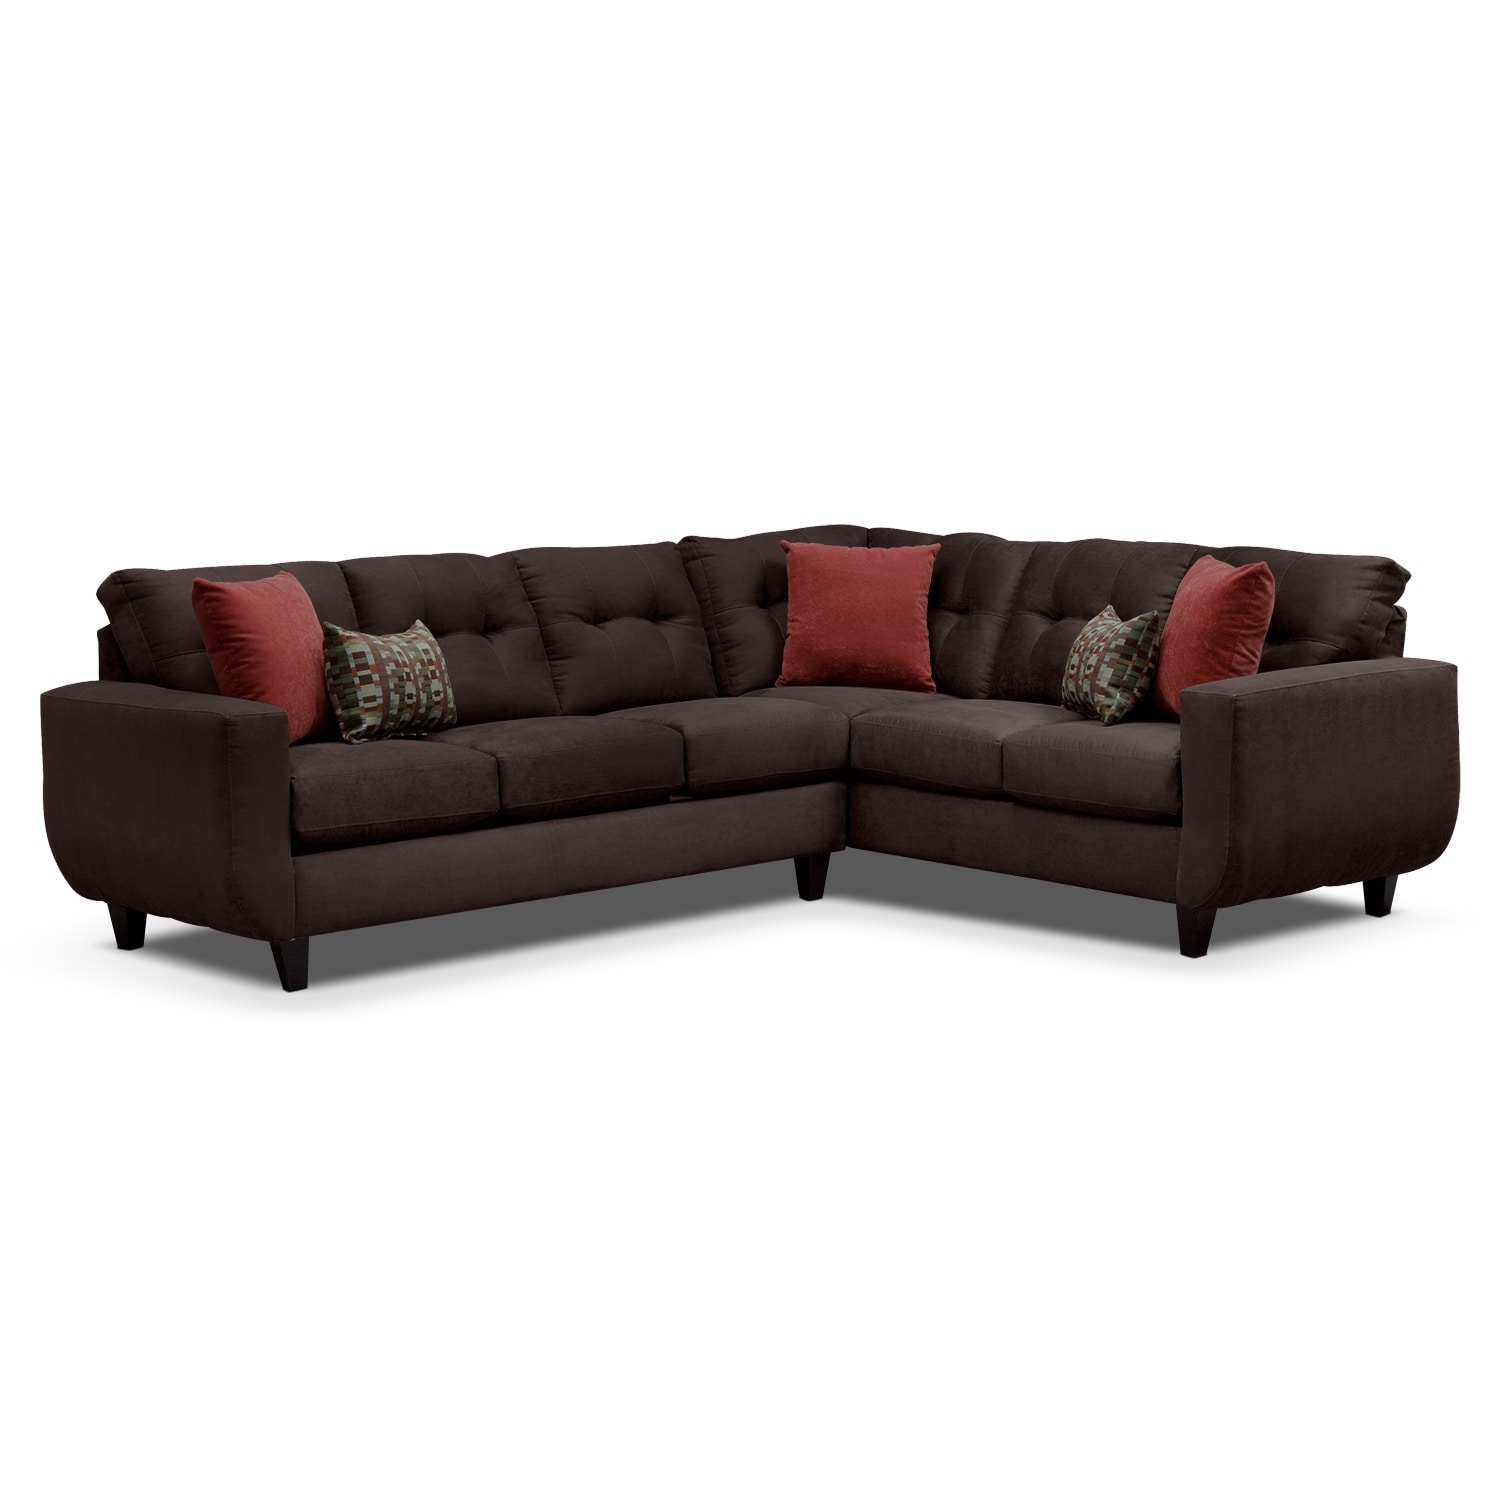 West Village 2 Piece Sectional Chocolate American Signature Furniture